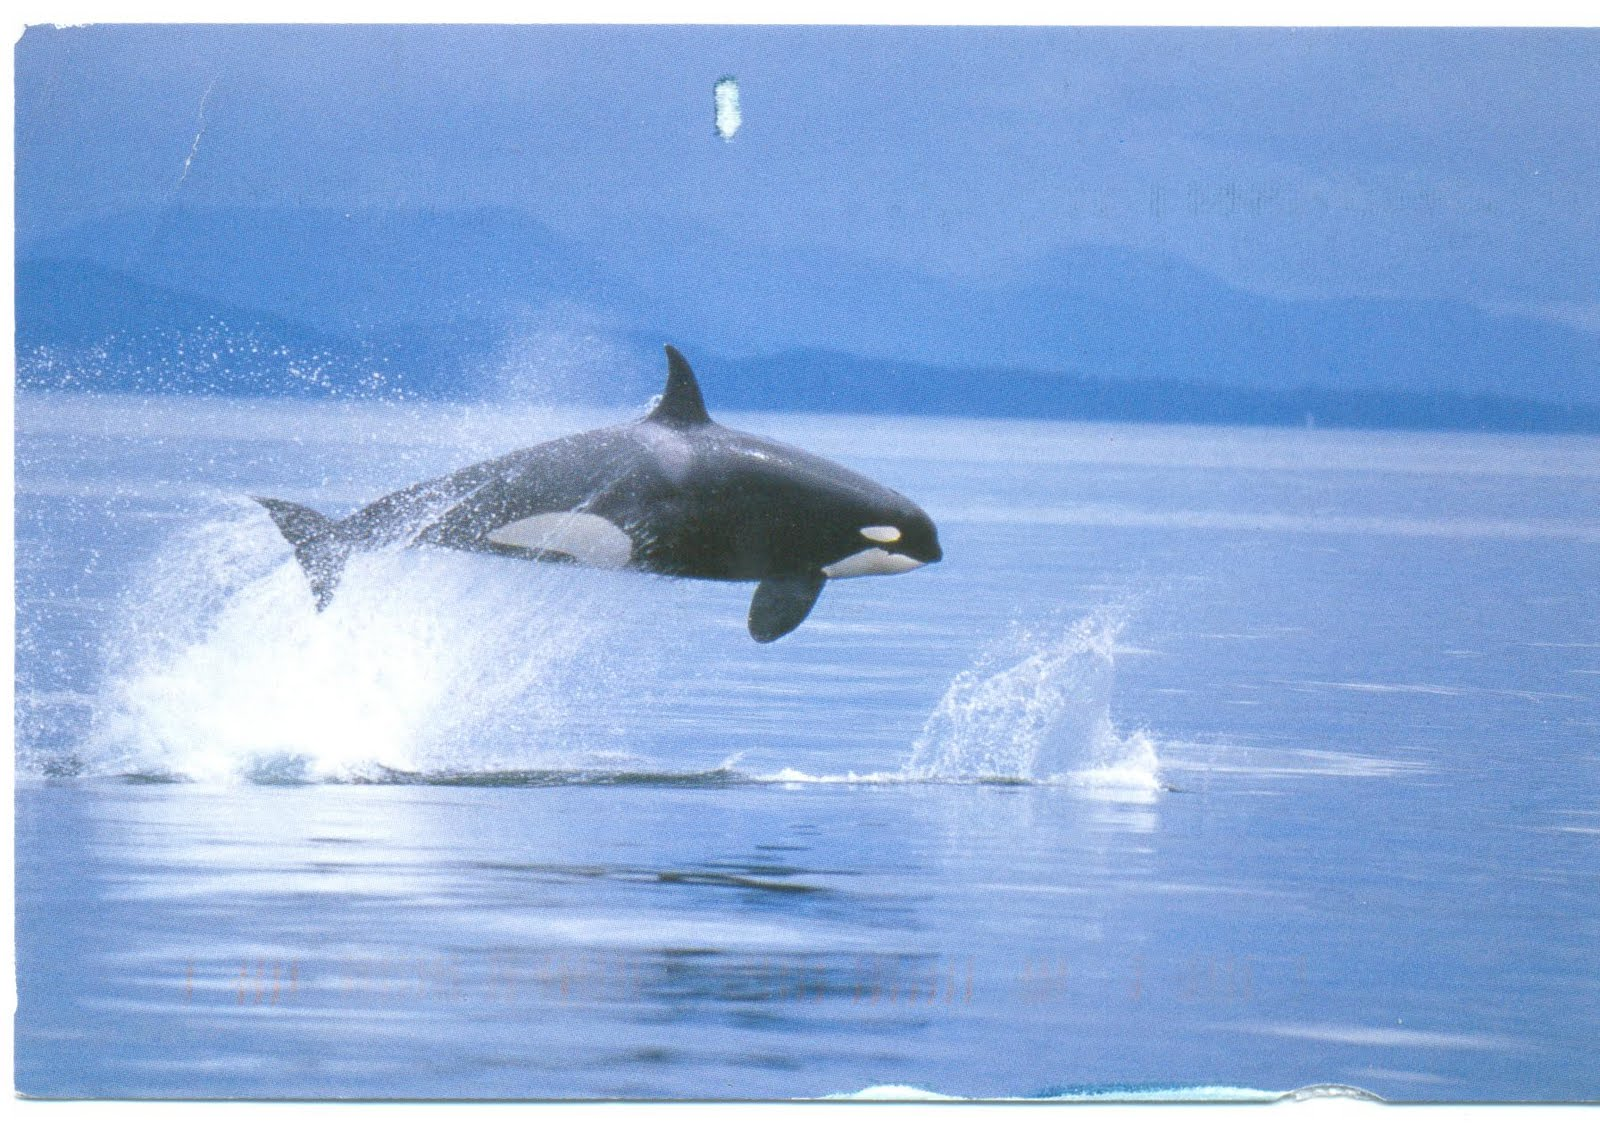 killer whales essay The killer whale name institutional affiliation the killer whale the killer whale is one of the largest predators in the sea it has a rounded head, black and white body patterns, and long dorsal fin.